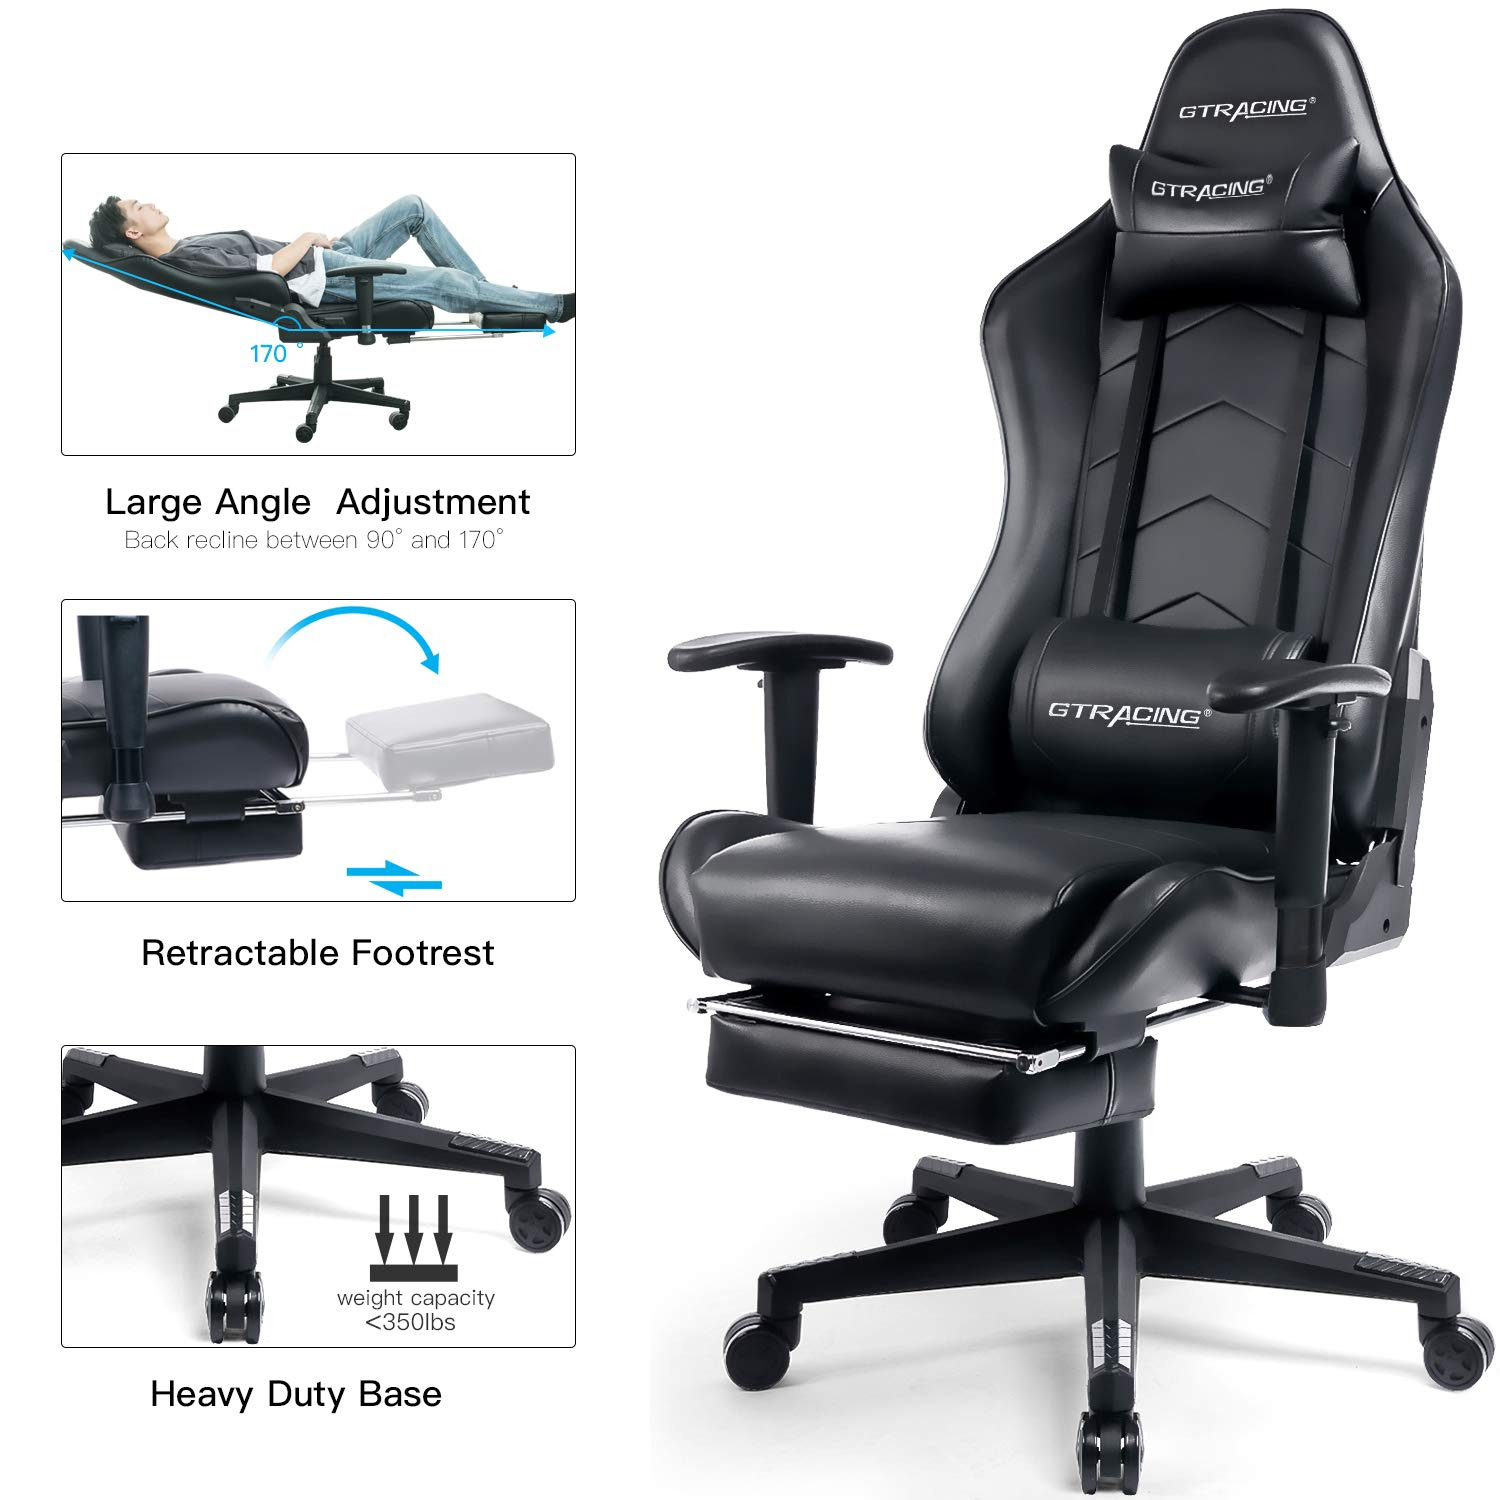 Gtracing Gaming Chair With Footrest Tiendamia Com